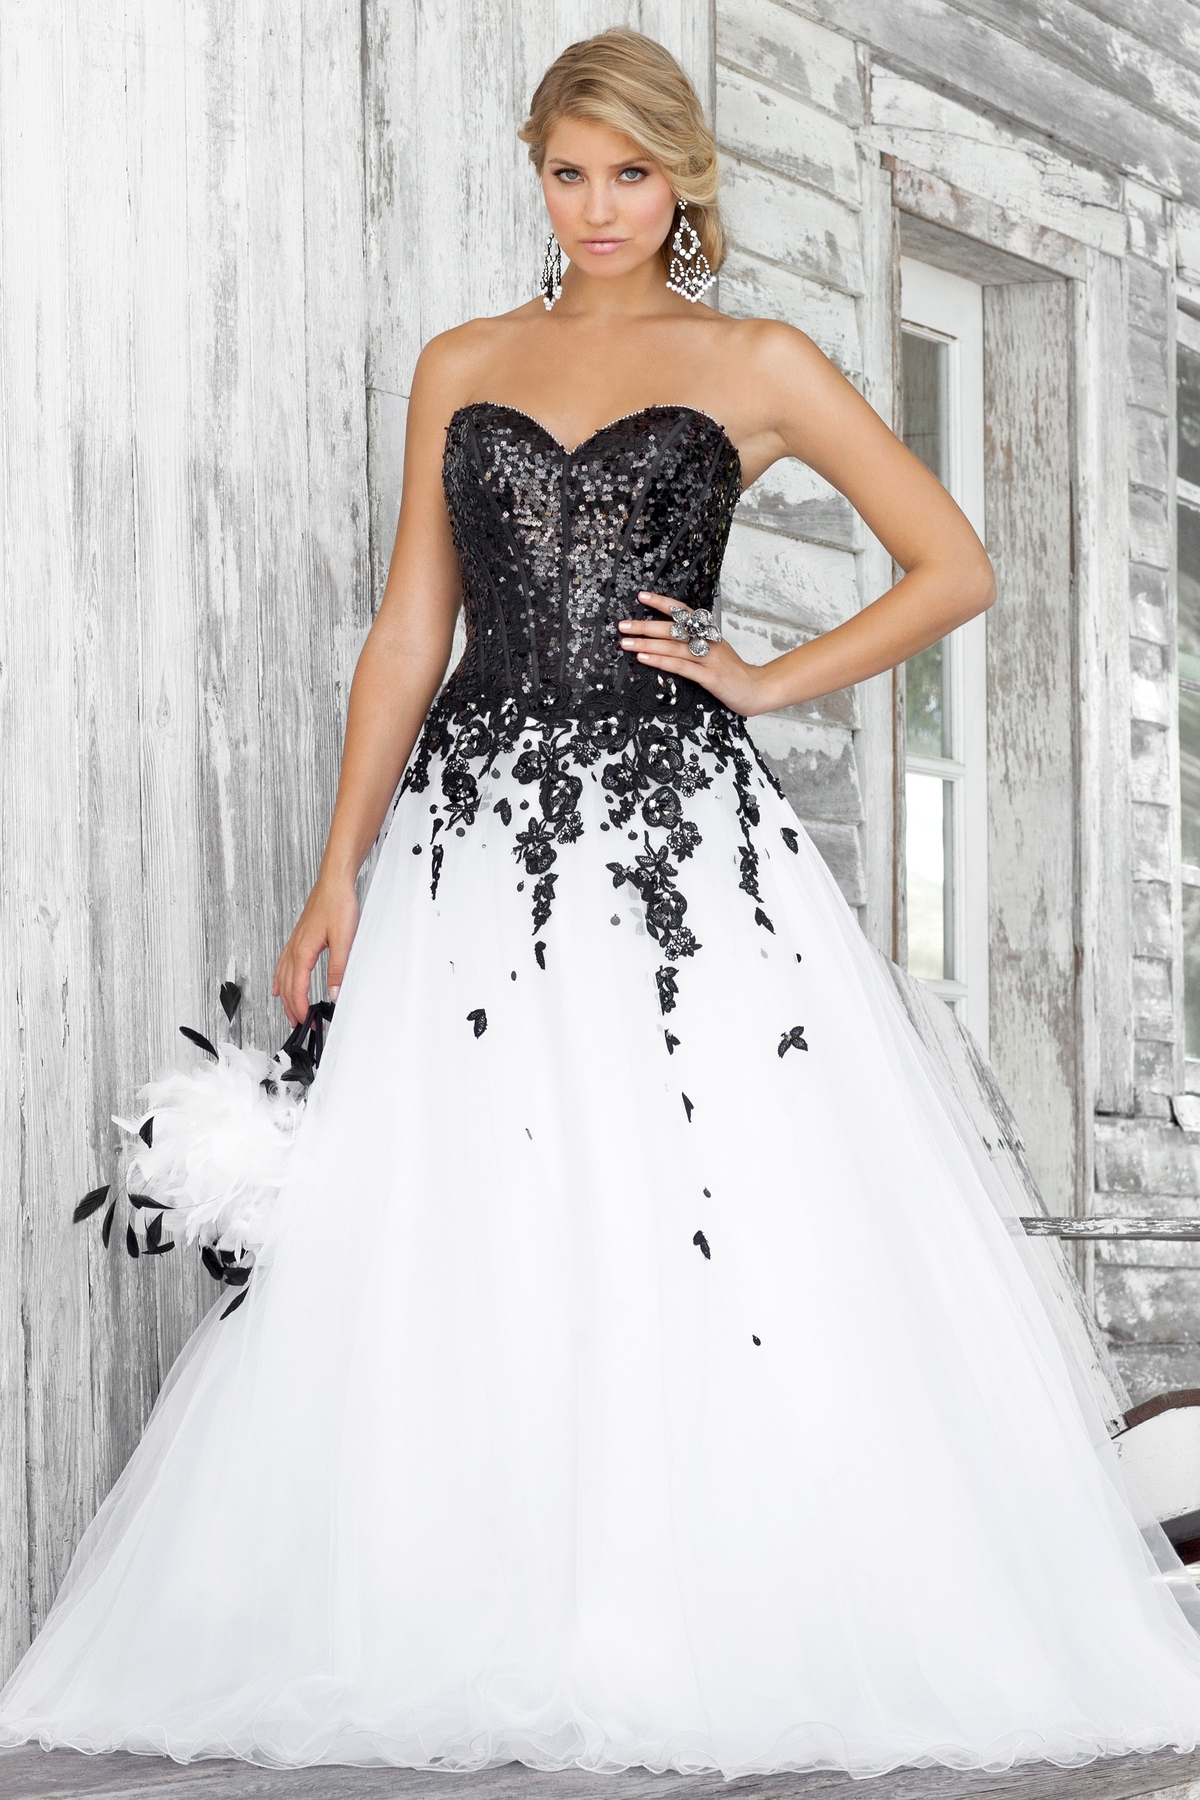 White Dress With Black Lace Sides - 25+ Images 2017-2018